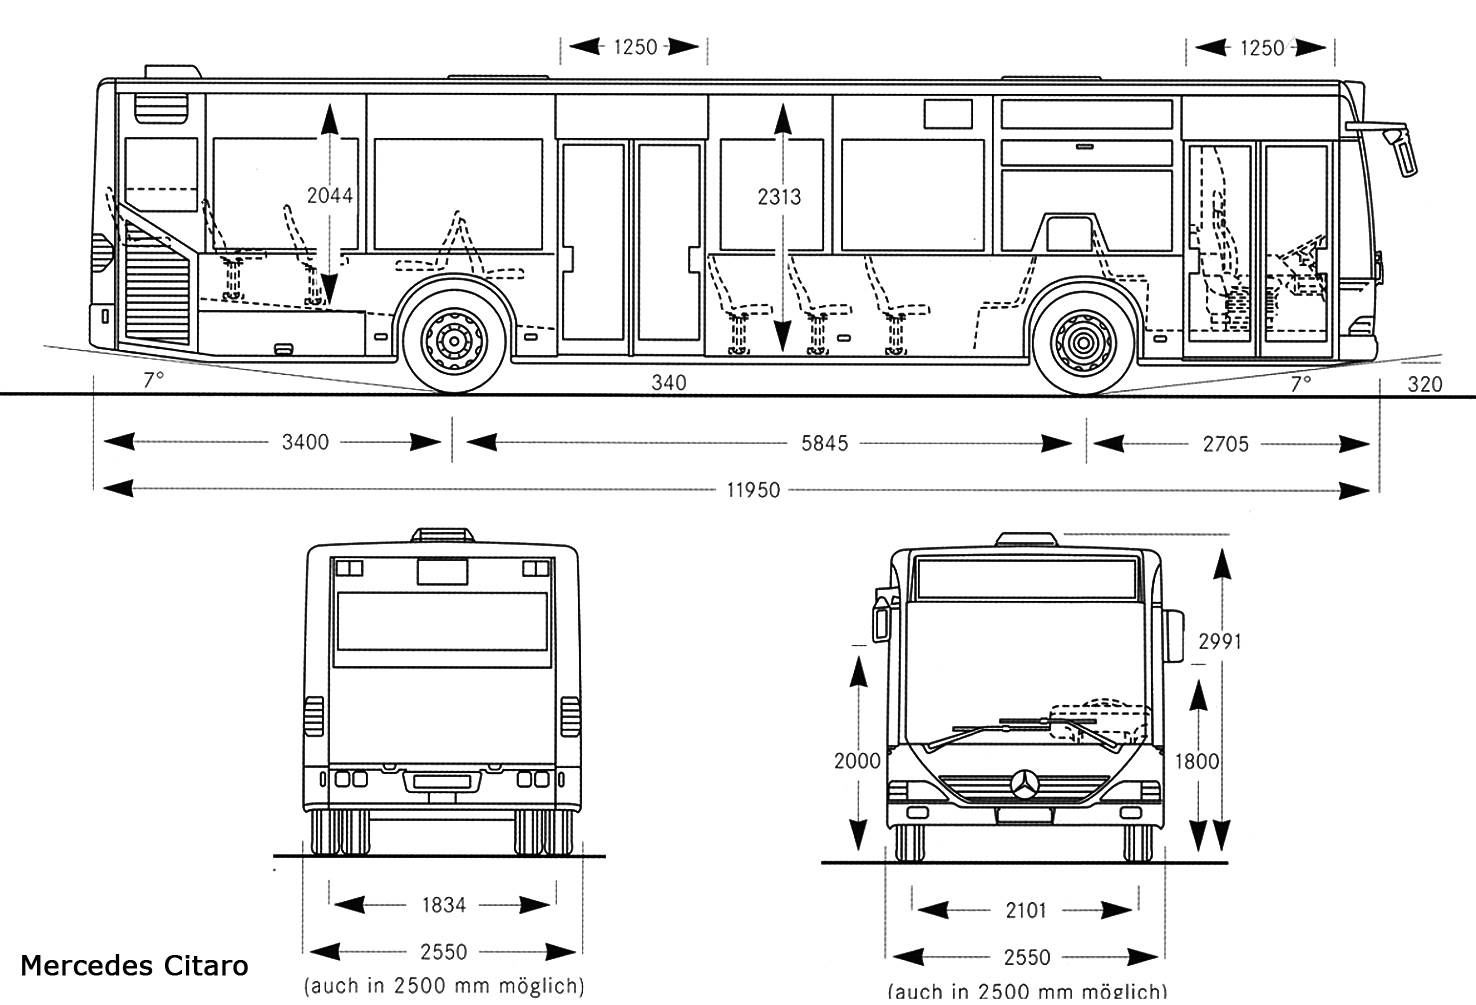 Mercedes Benz Citaro Blueprint